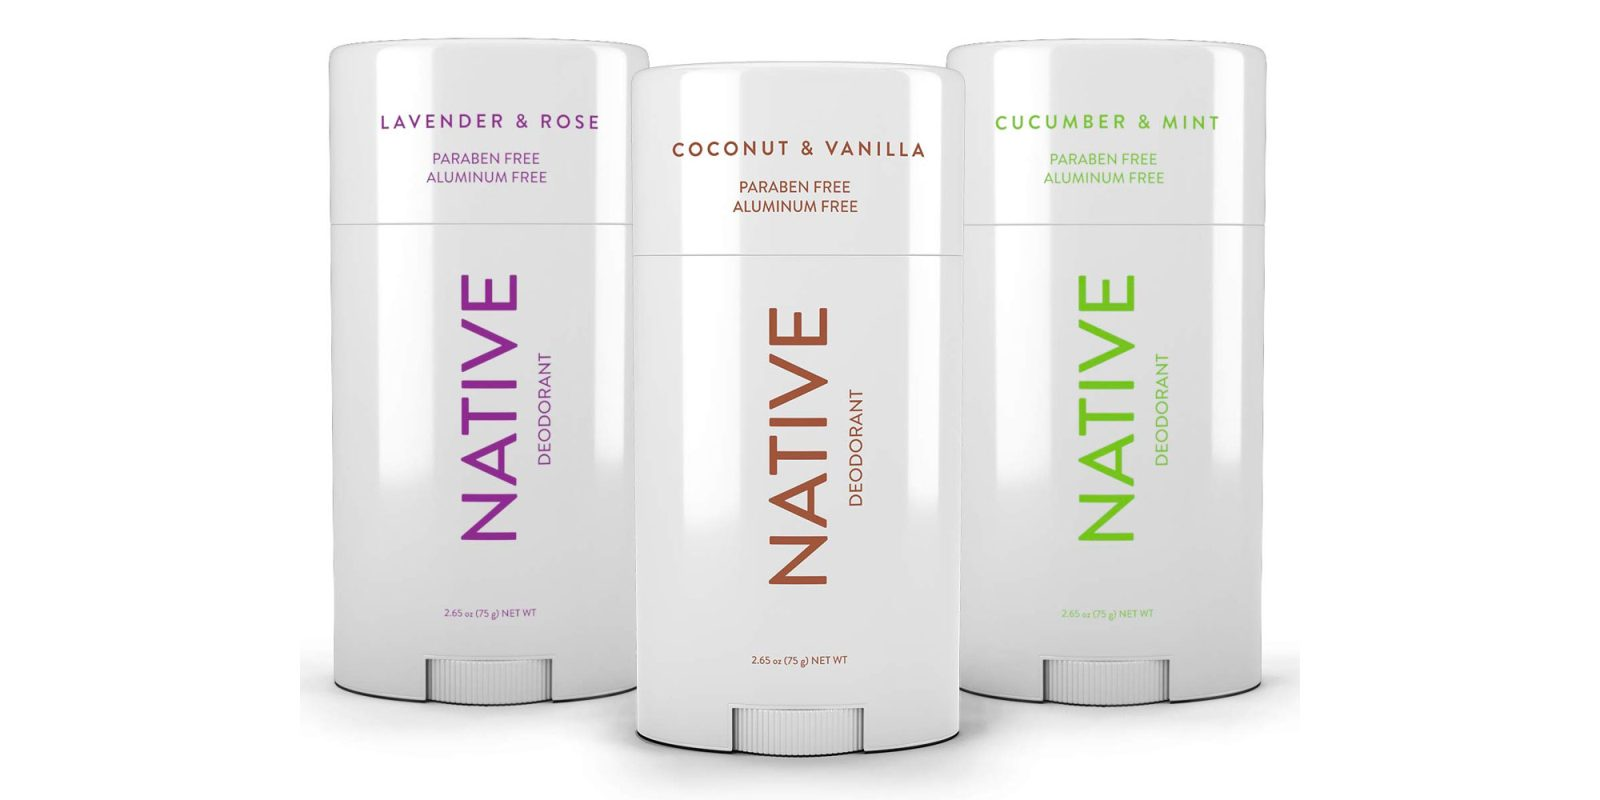 Get three sticks of Native natural aluminum-free deodorant from $24 (33% off)